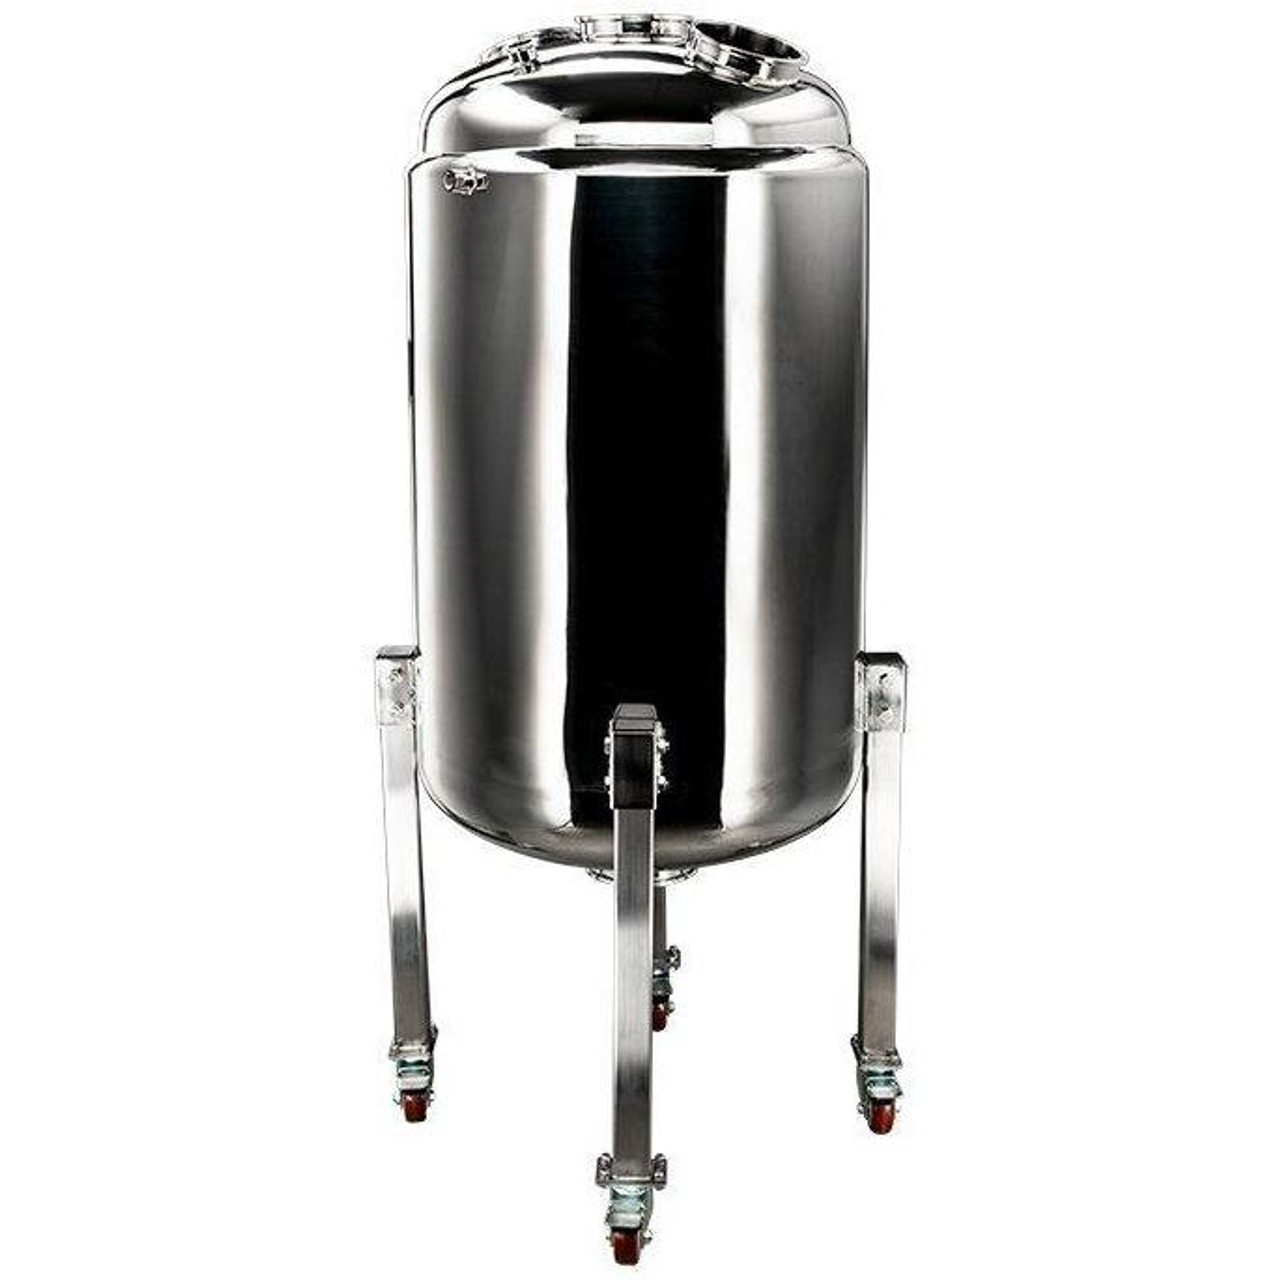 300L Jacketed Stainless Steel Collection Vessel with Locking Casters